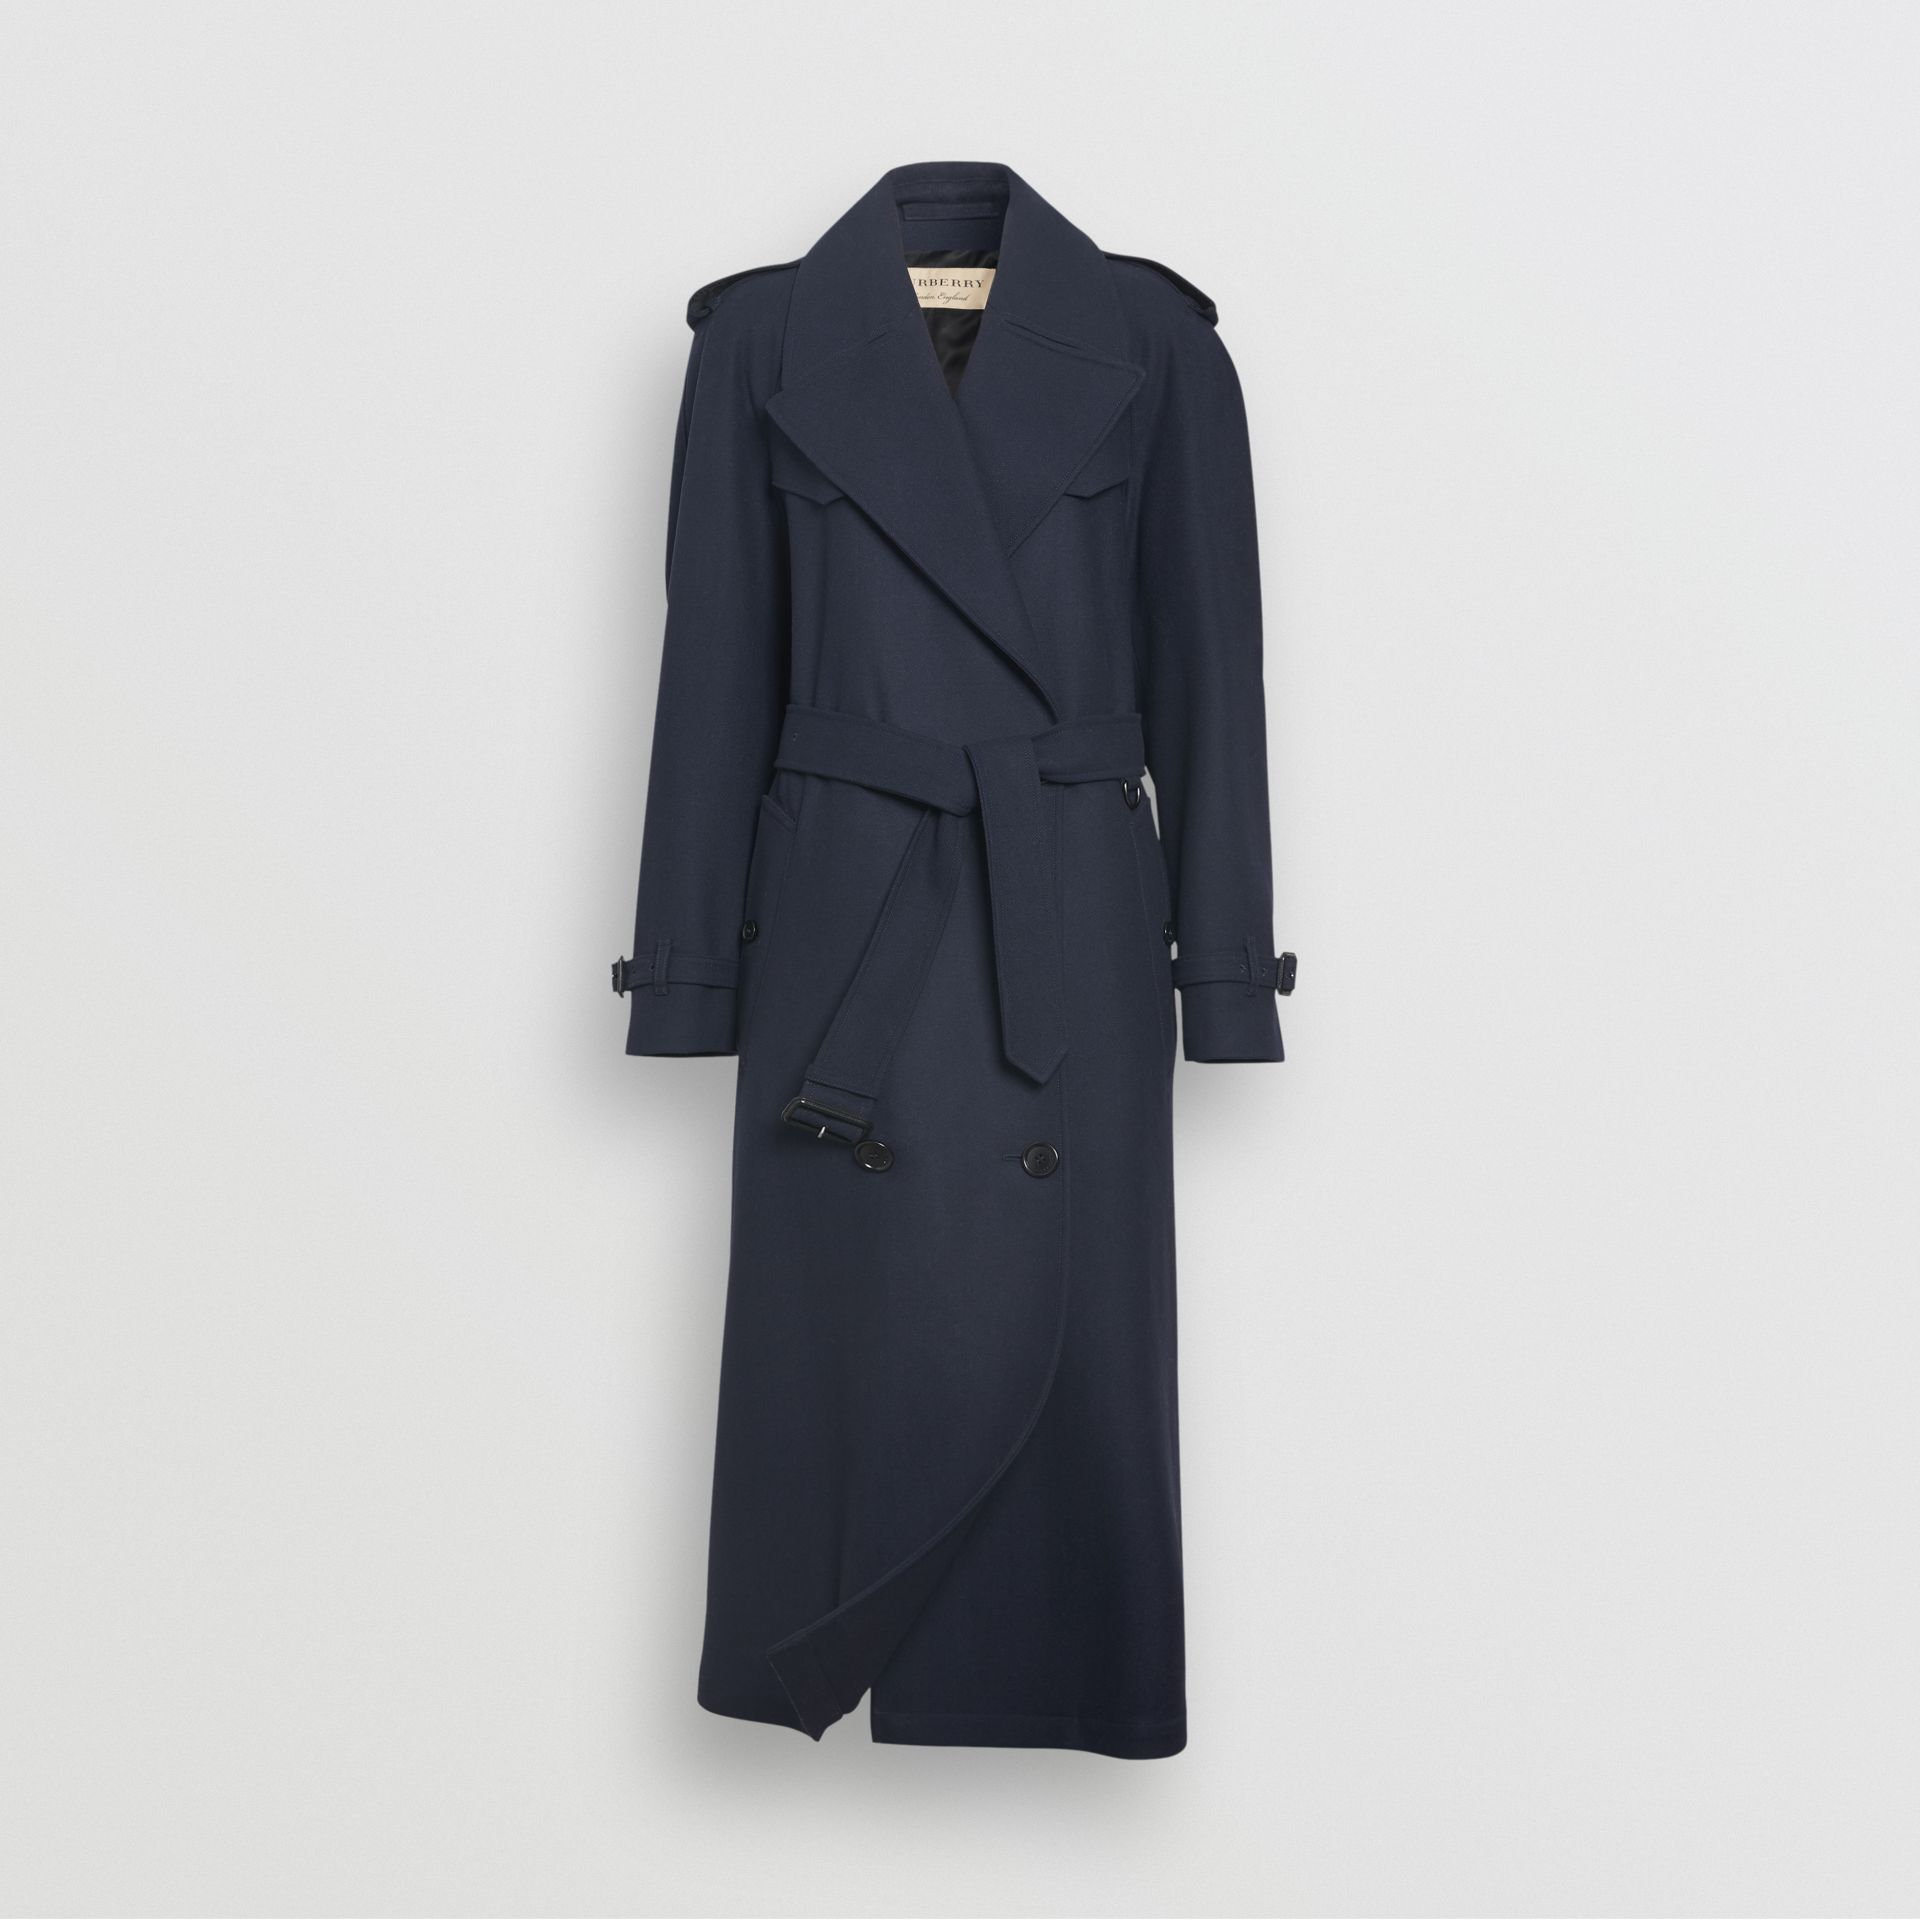 Herringbone Wool Blend Trench Coat in Navy - Women | Burberry - gallery image 3